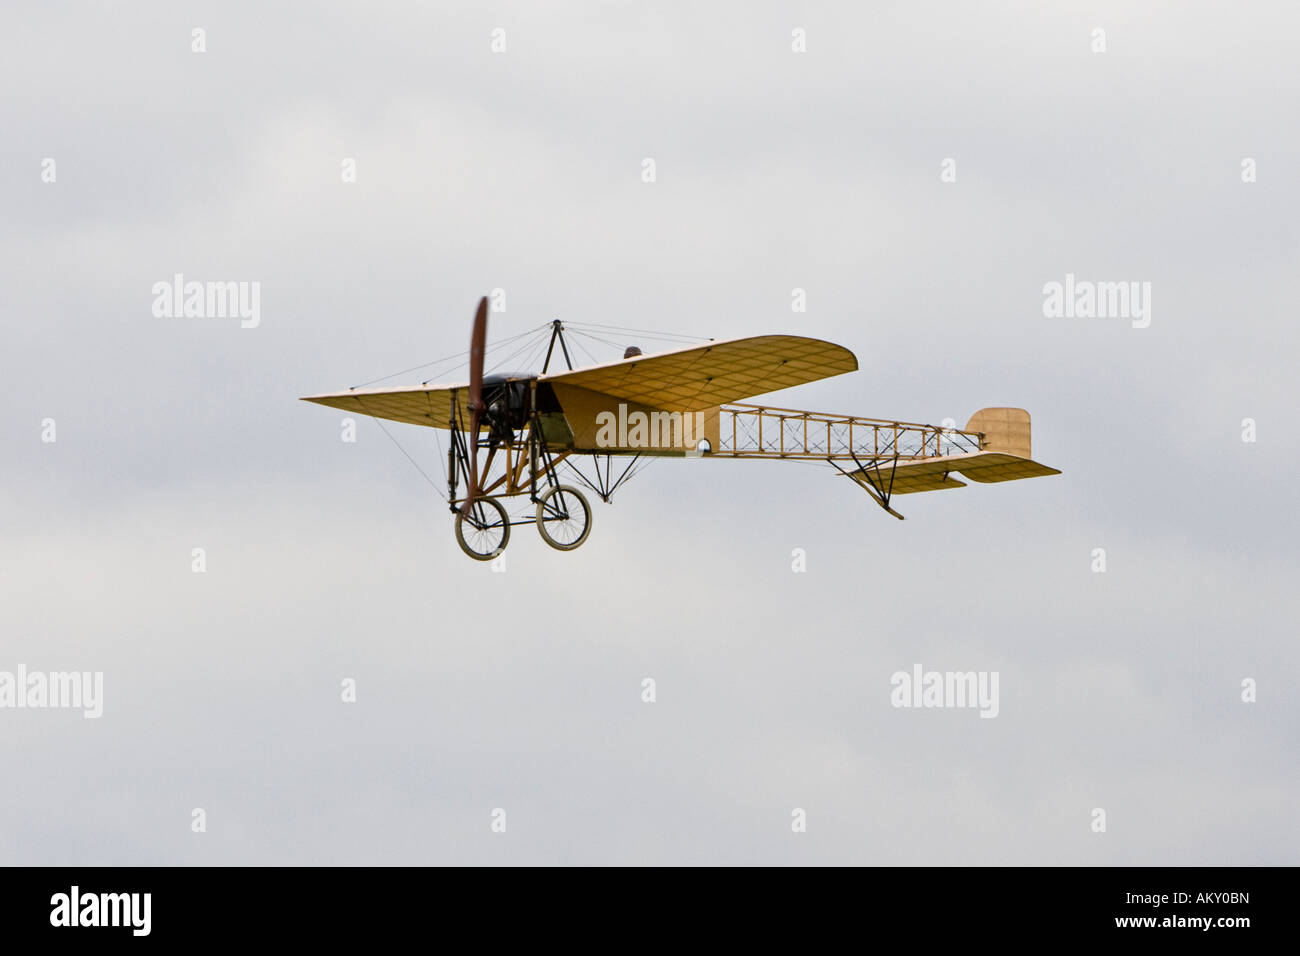 Bleriot XI, 'La Manche', vintage planes meeting at the Hahnweide, Kirchheim-Teck, Baden Wuerttemberg, Germany - Stock Image